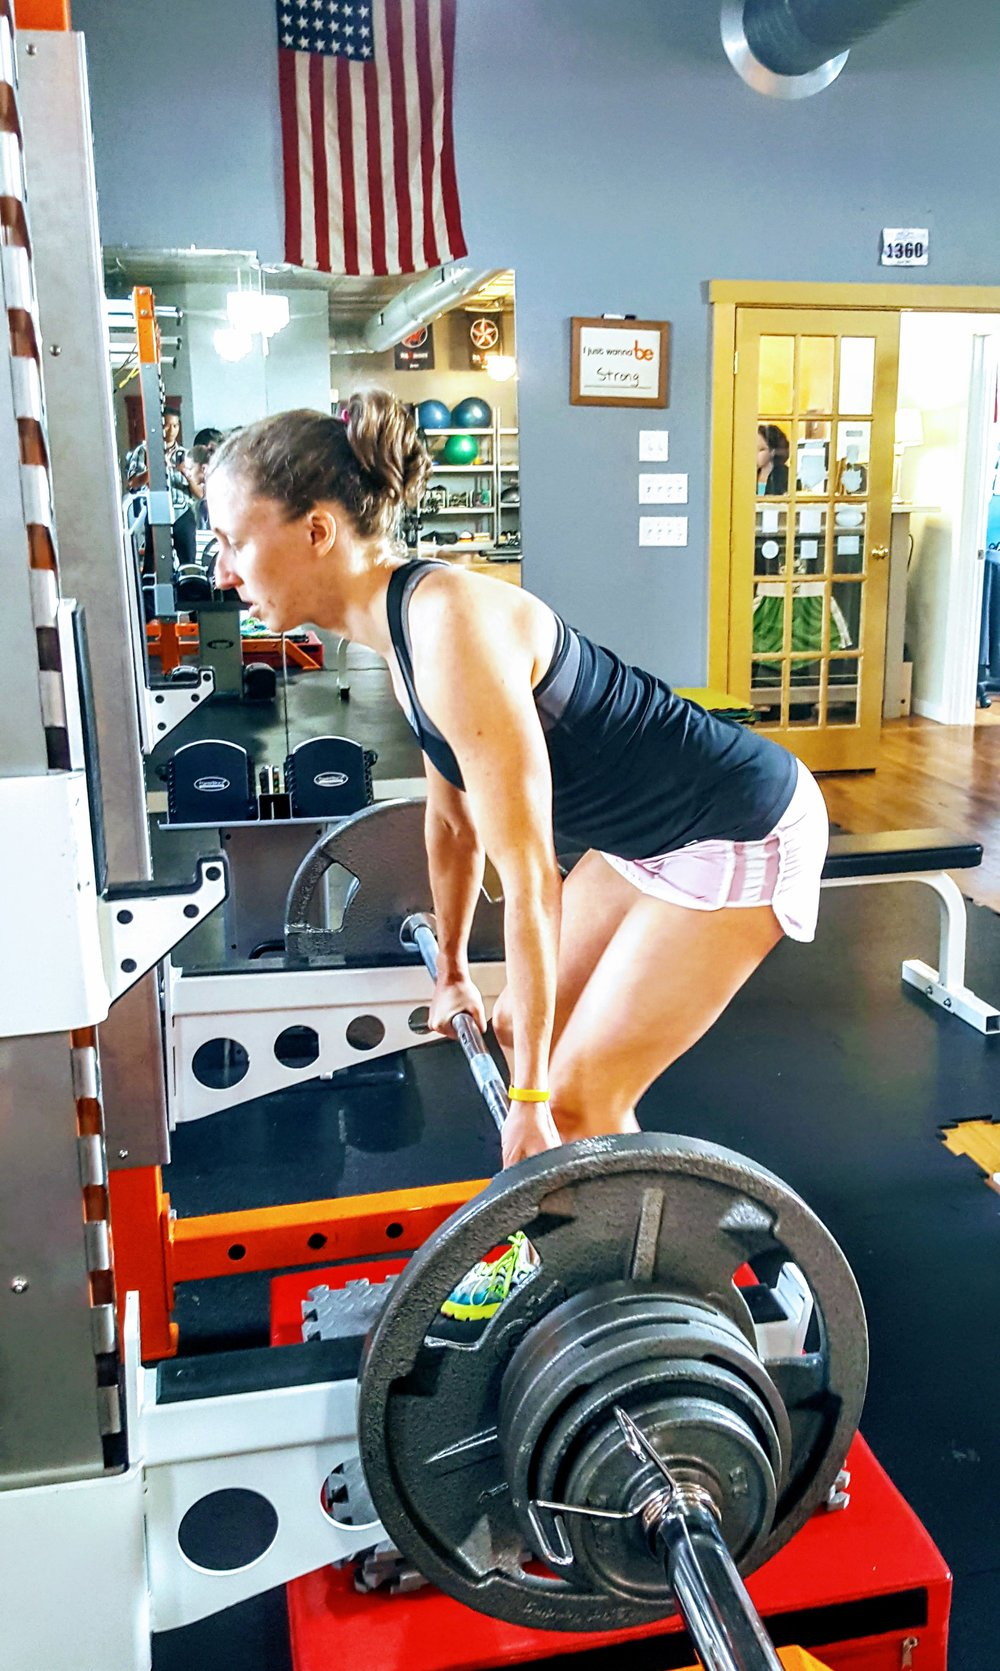 Jocelyn is performing a rack lift to strengthen the back, hamstrings, and gluteals--all muscles that are traditionally very weak in endurance athletes.